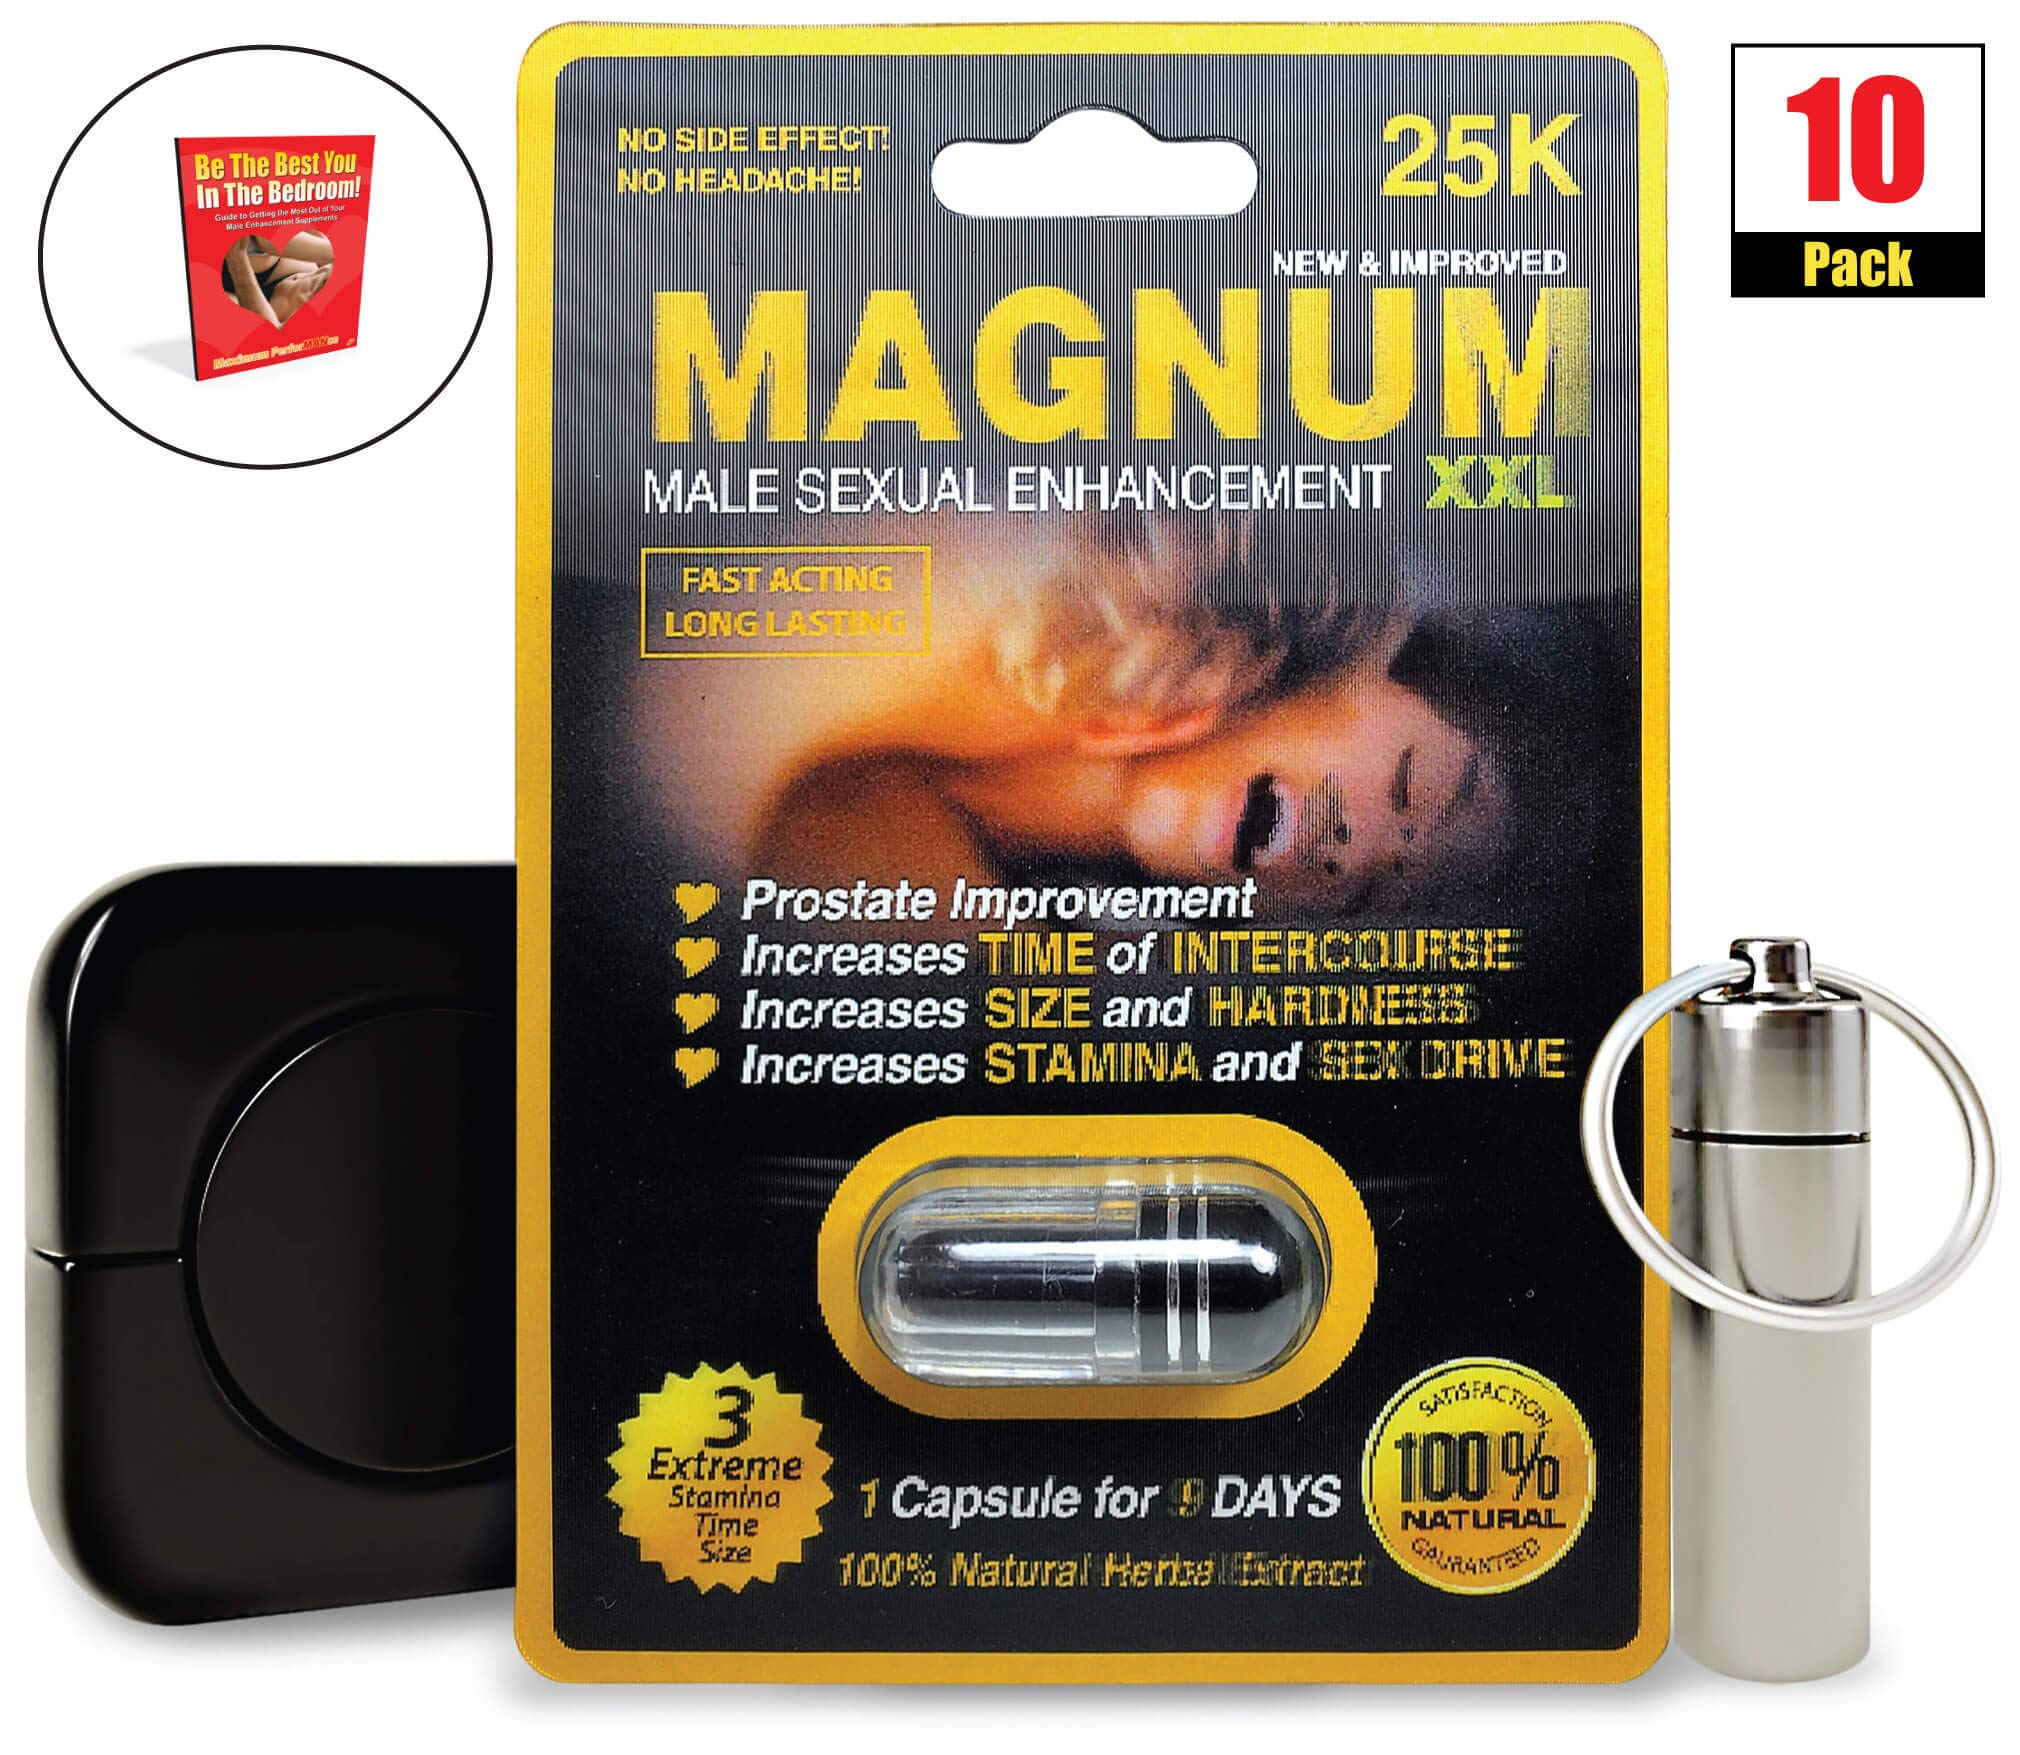 Magnum XXL 25k (10) Pack, Natural Male Performance Booster, Increase Energy & Stamina Bundle w/Keychain, Case, Booklet (13 Items)